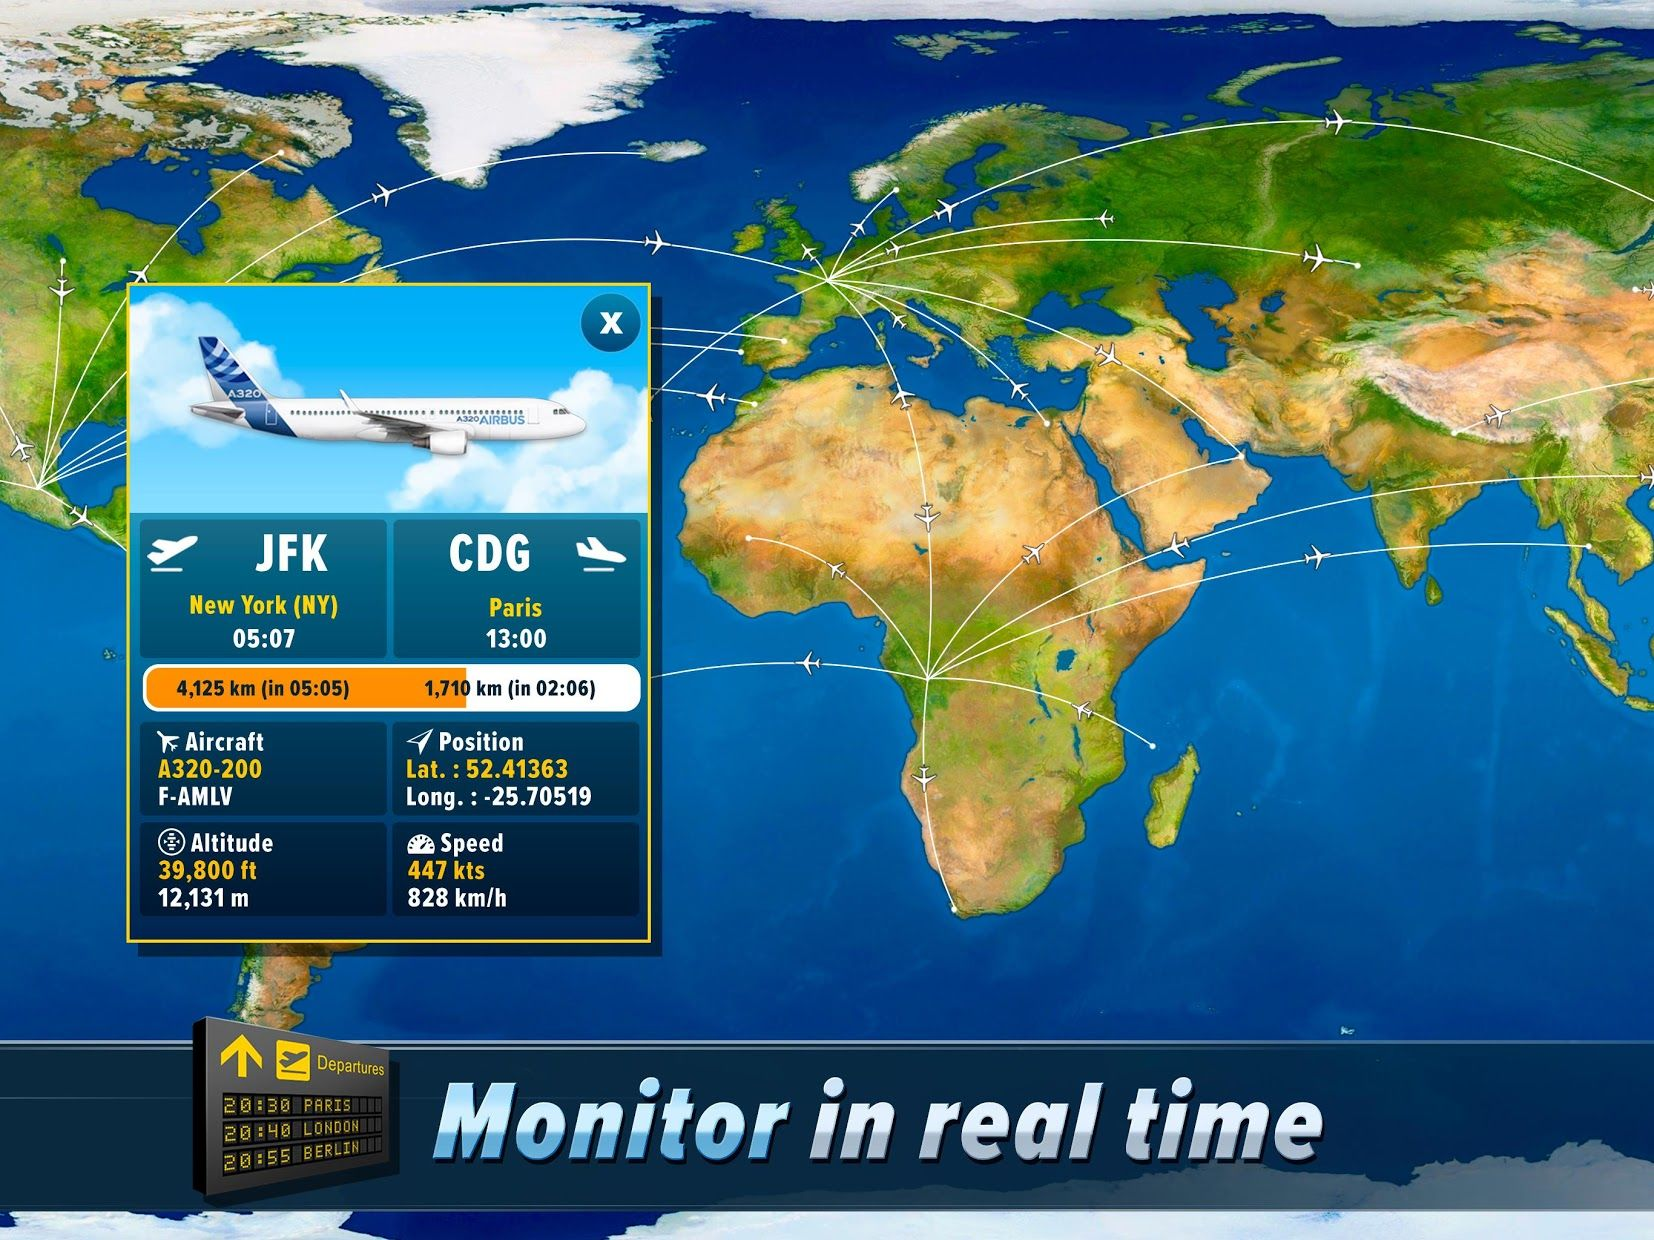 Airlines Manager - Tycoon 2018 游戏截图2